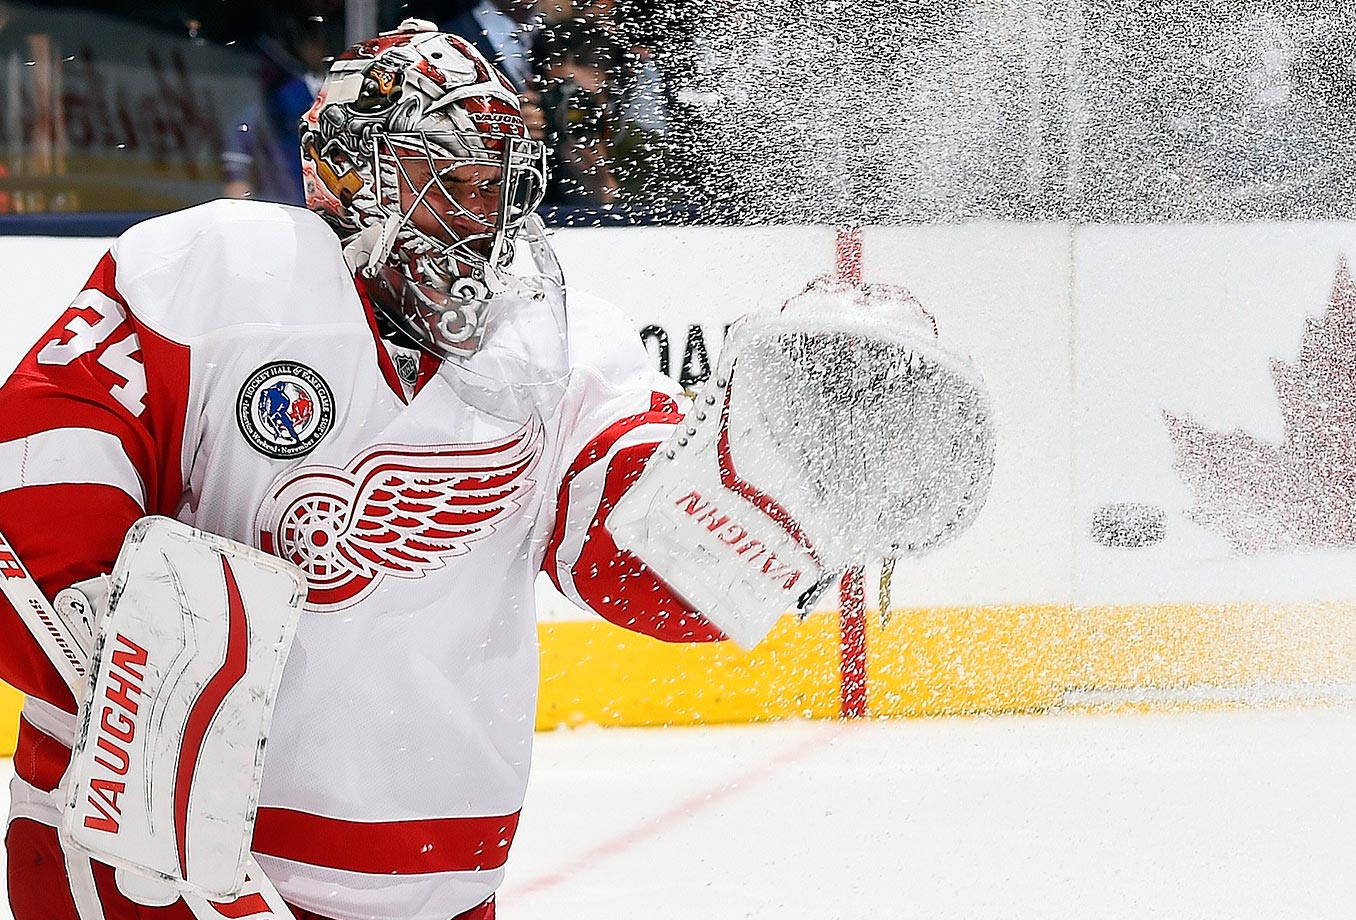 Petr Mrazek of the Detroit Red Wings makes a save through a spray of ice against the Toronto Maple Leafs.